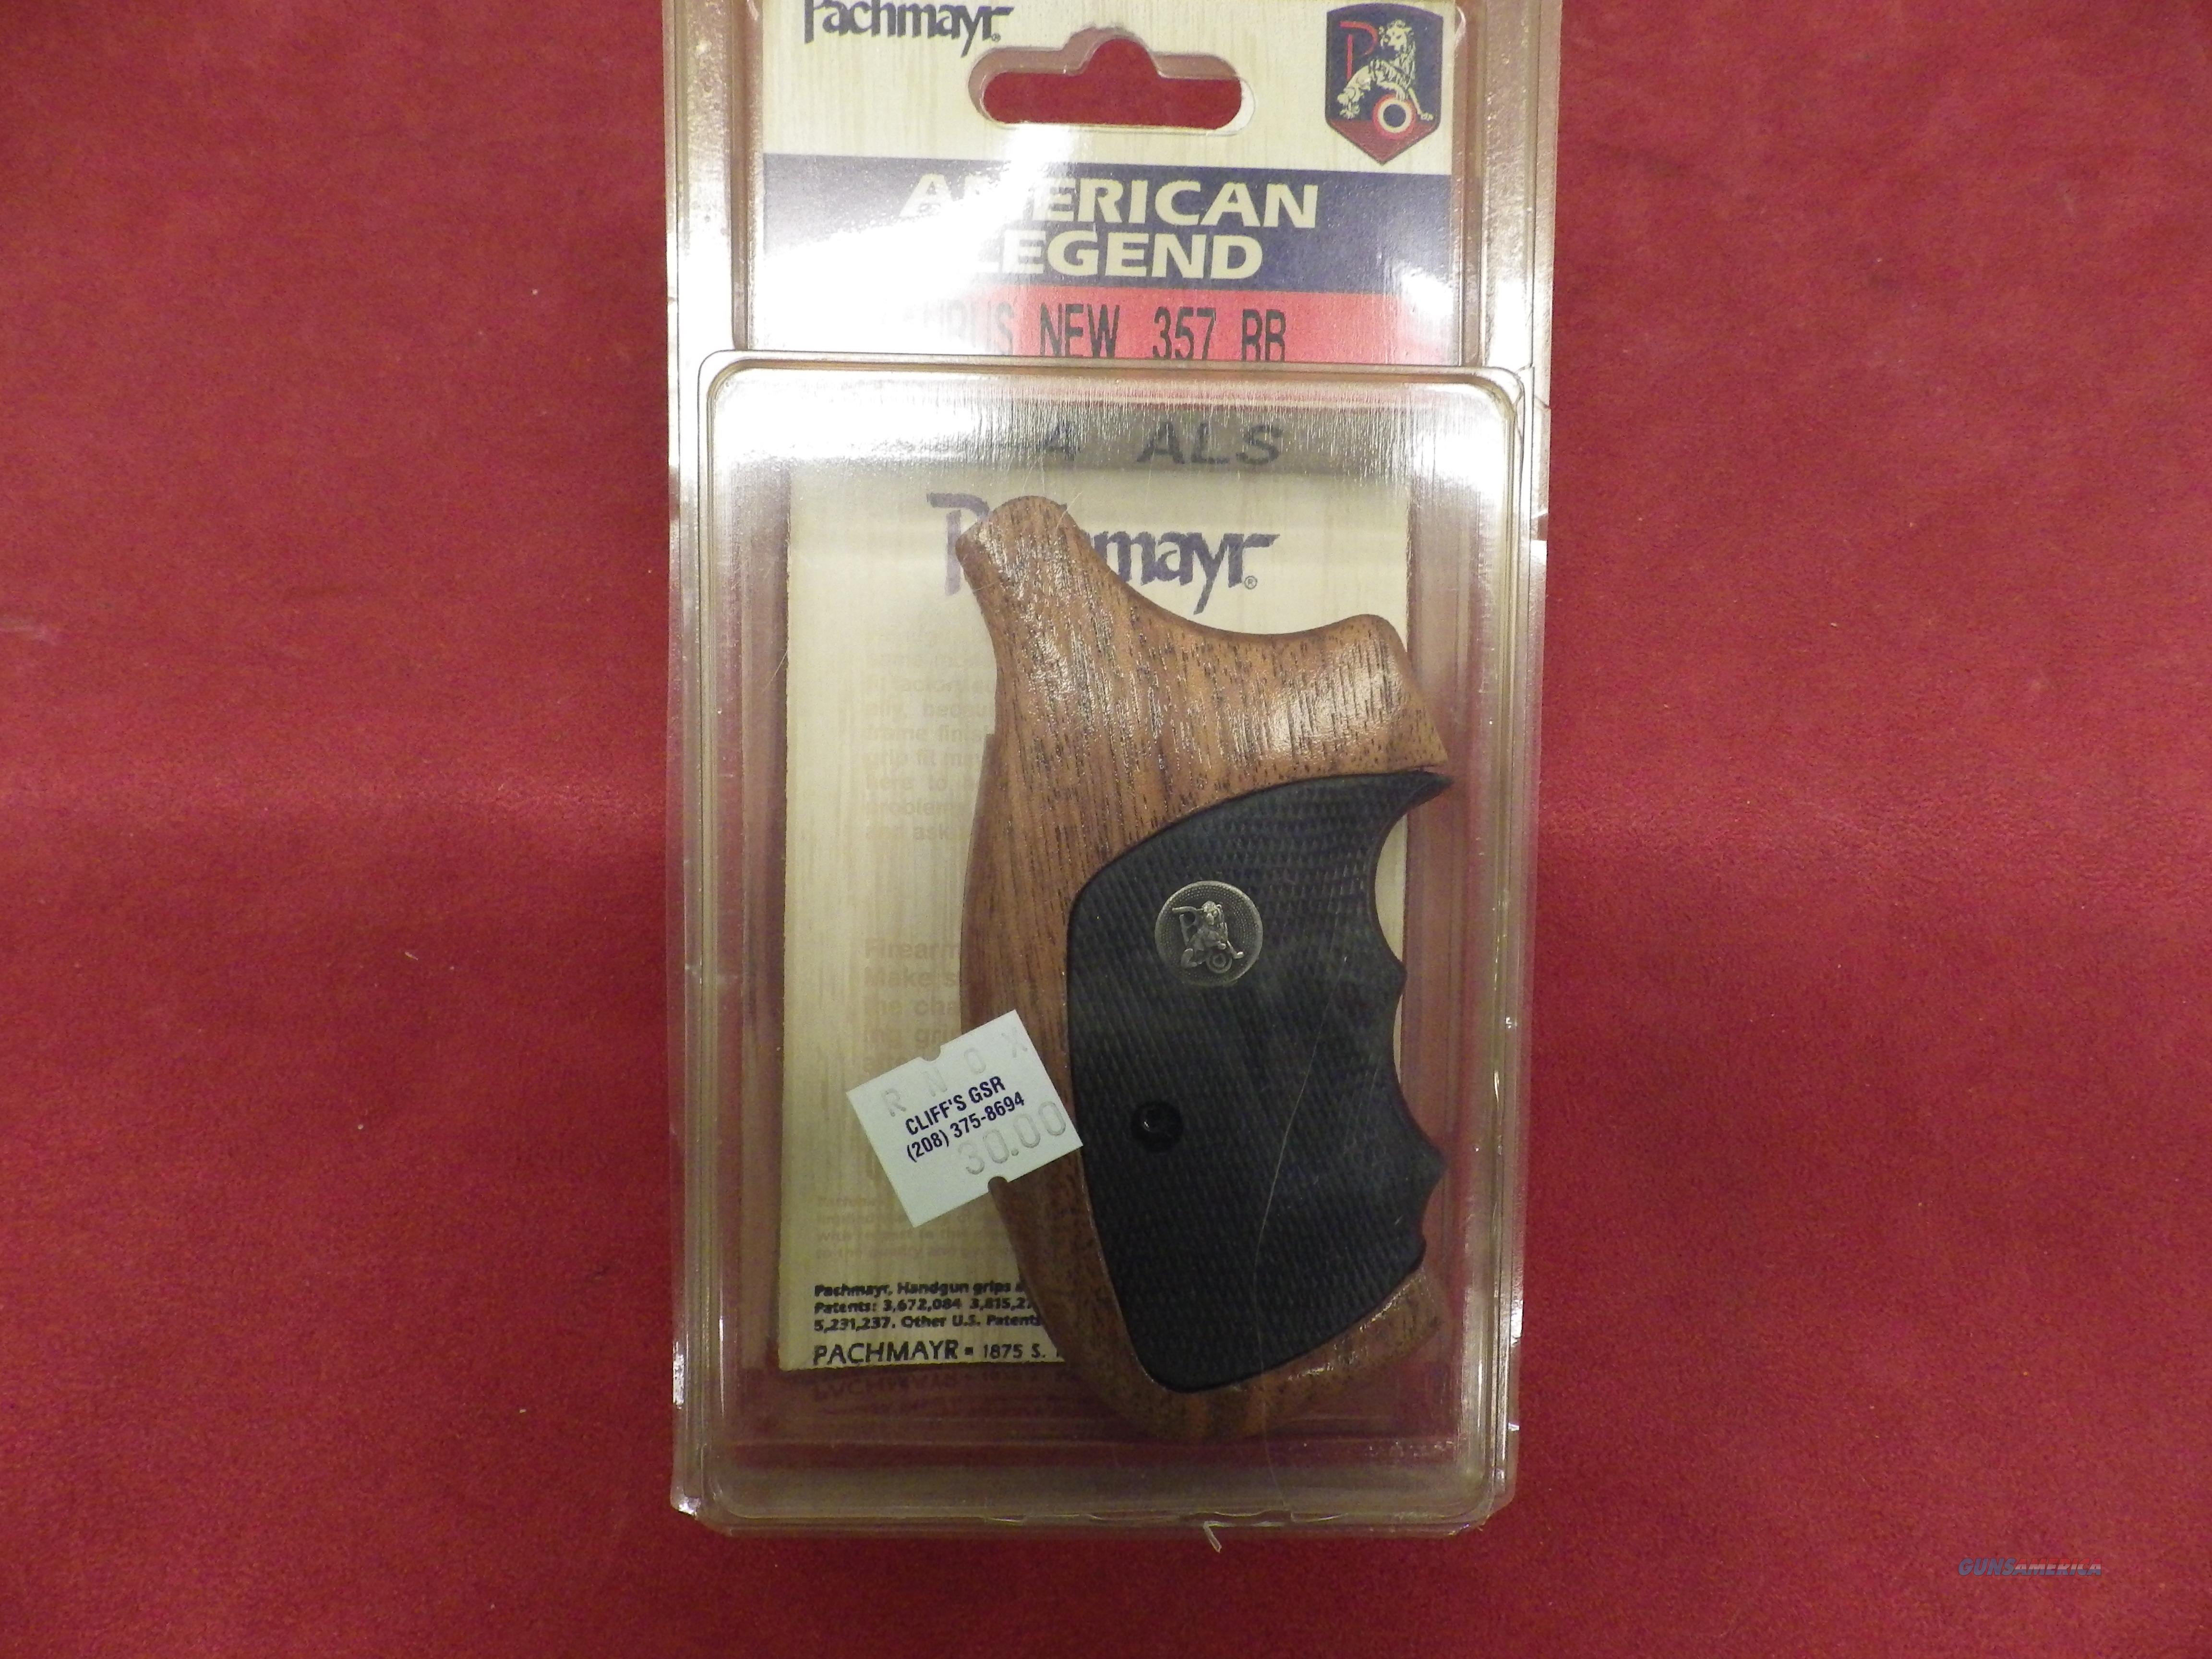 Pachmayr Handgun Grips for Taurus New .357 RB  Non-Guns > Gunstocks, Grips & Wood